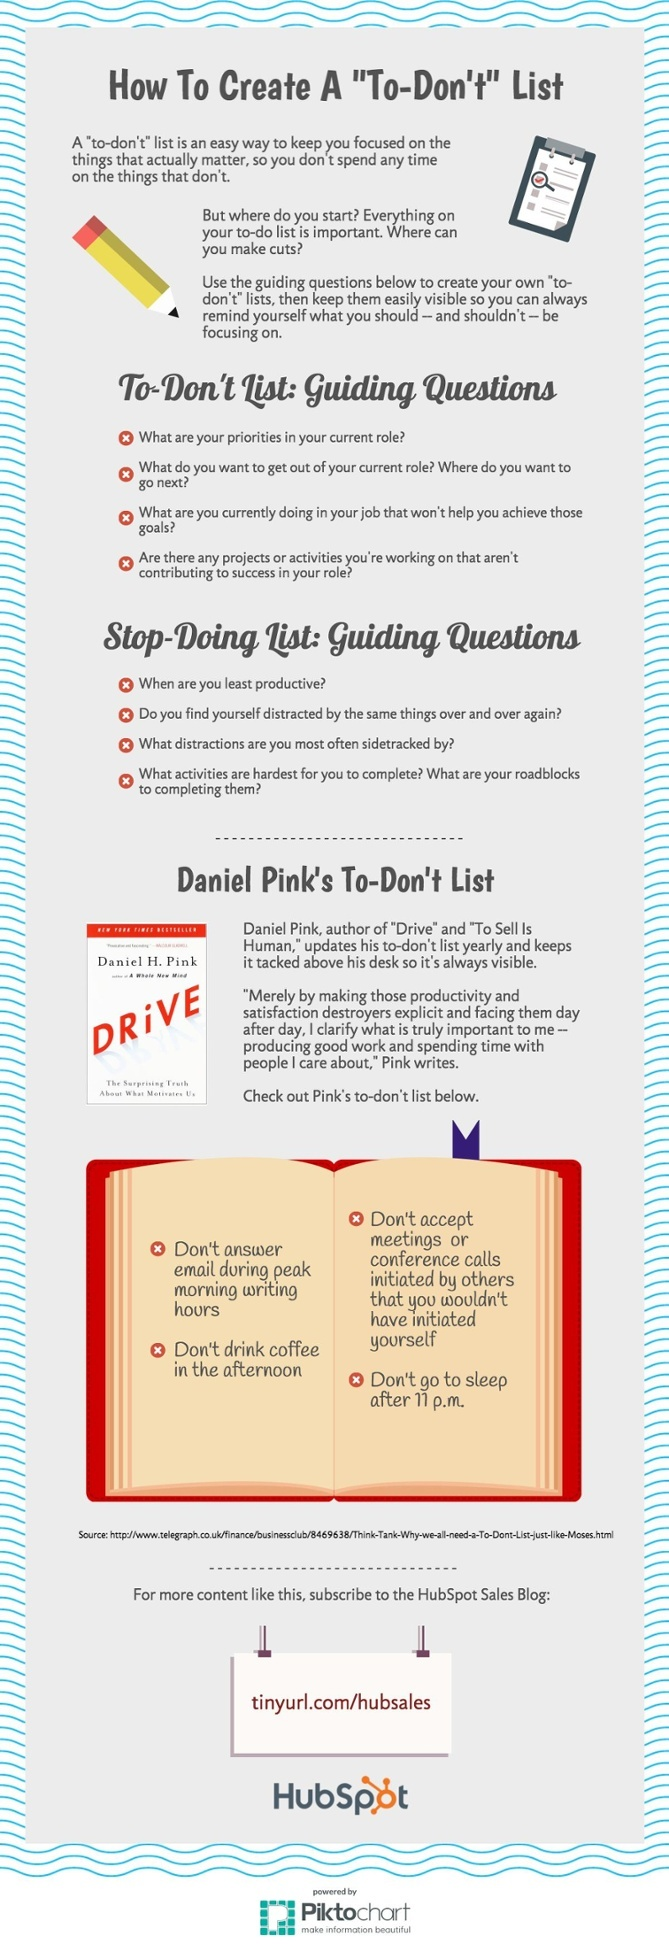 to-dont-list-infographic.jpeg